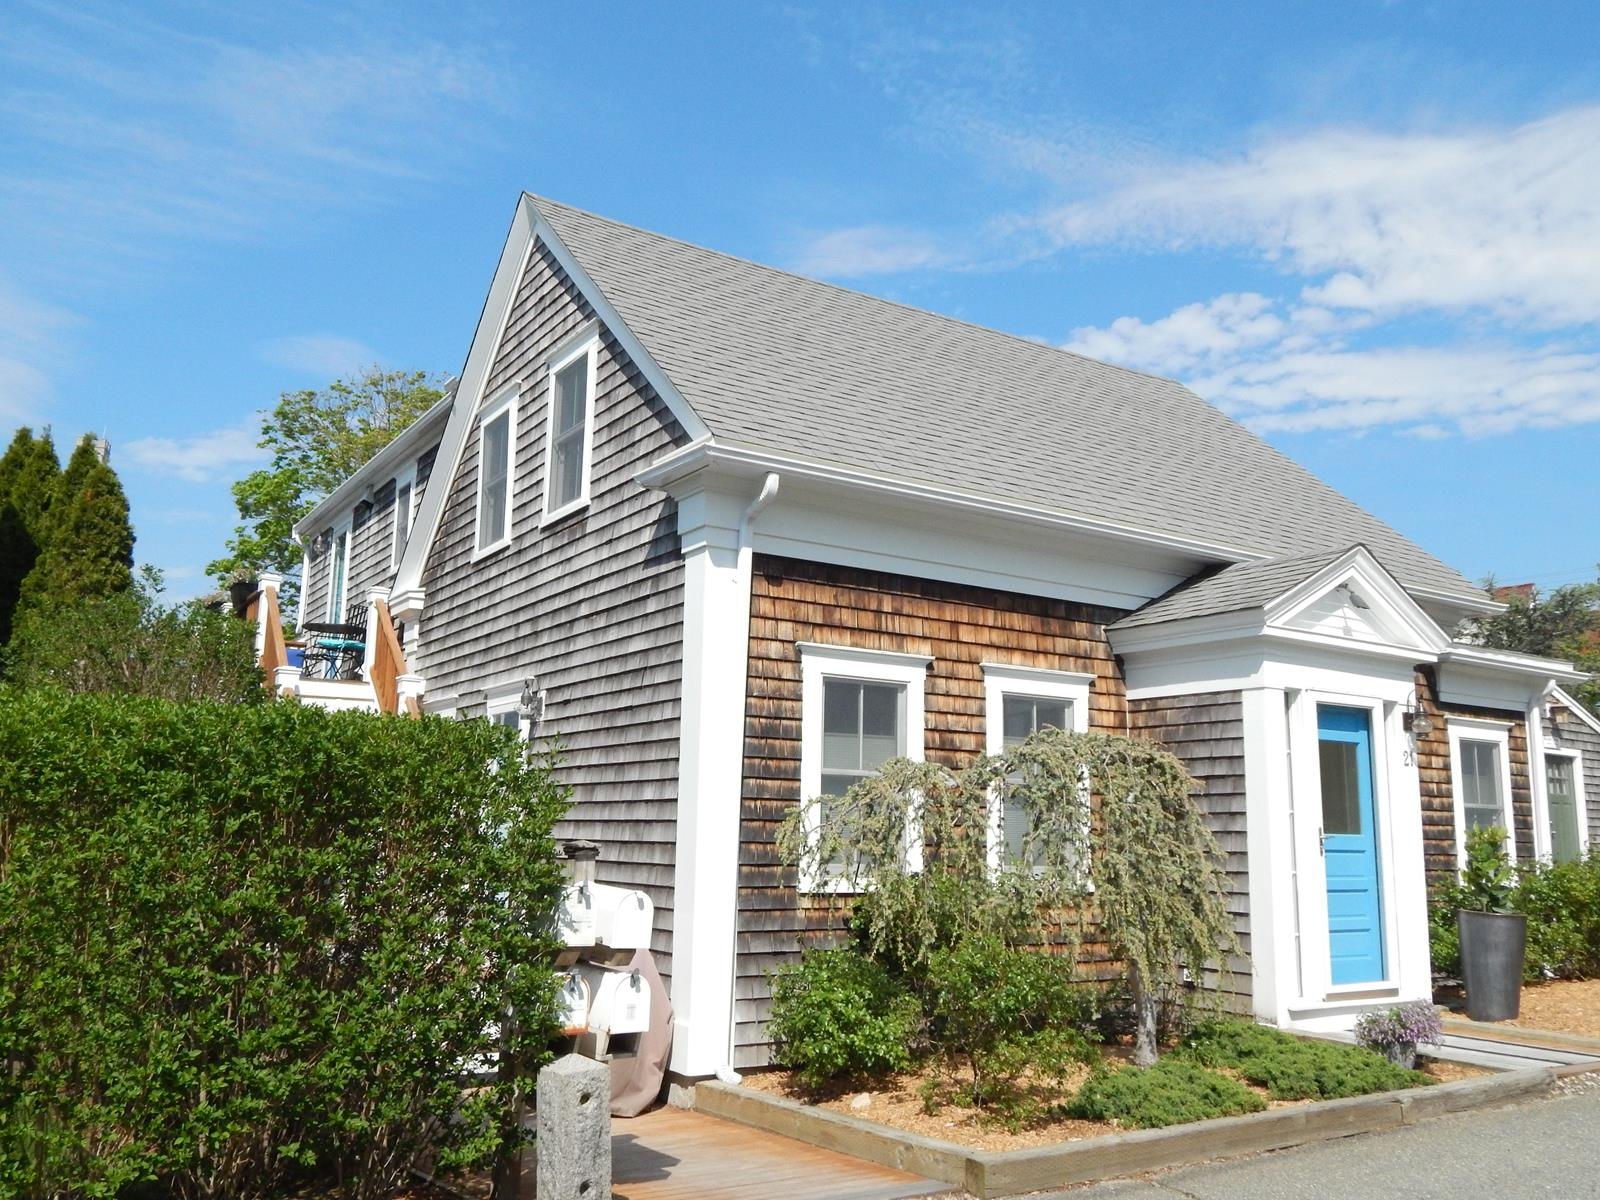 Condomínio para Venda às West End 3 Bedroom Condominium 21 Court Street, Unit 2 Provincetown, Massachusetts, 02657 Estados Unidos